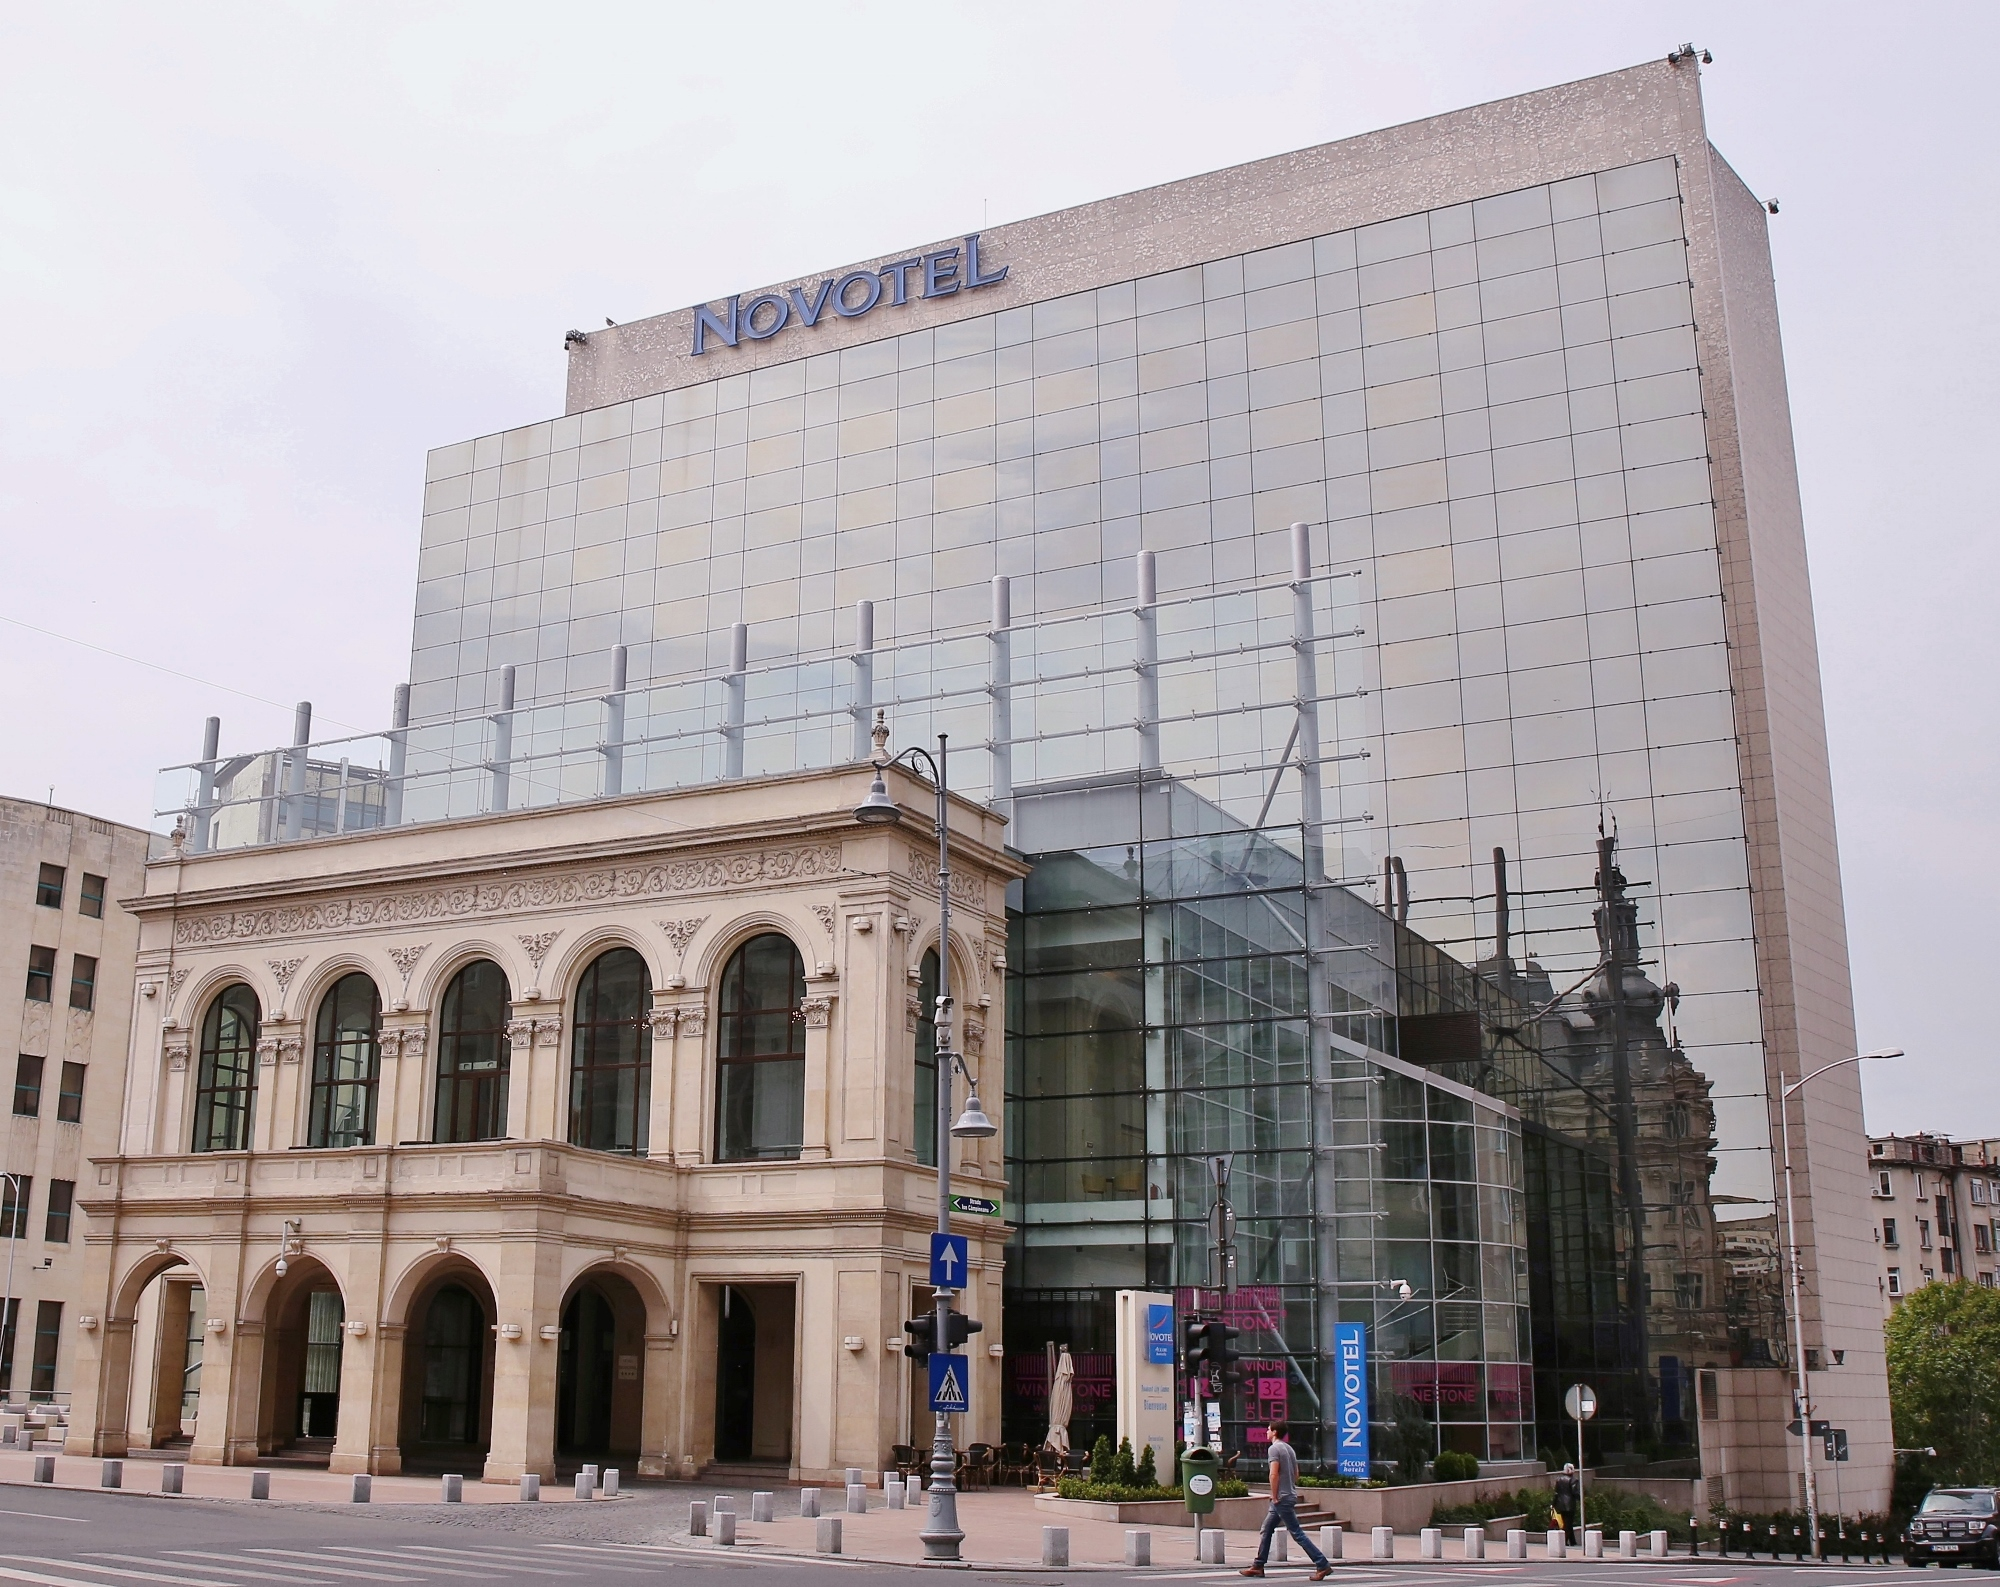 Hotel Novotel Bucharest